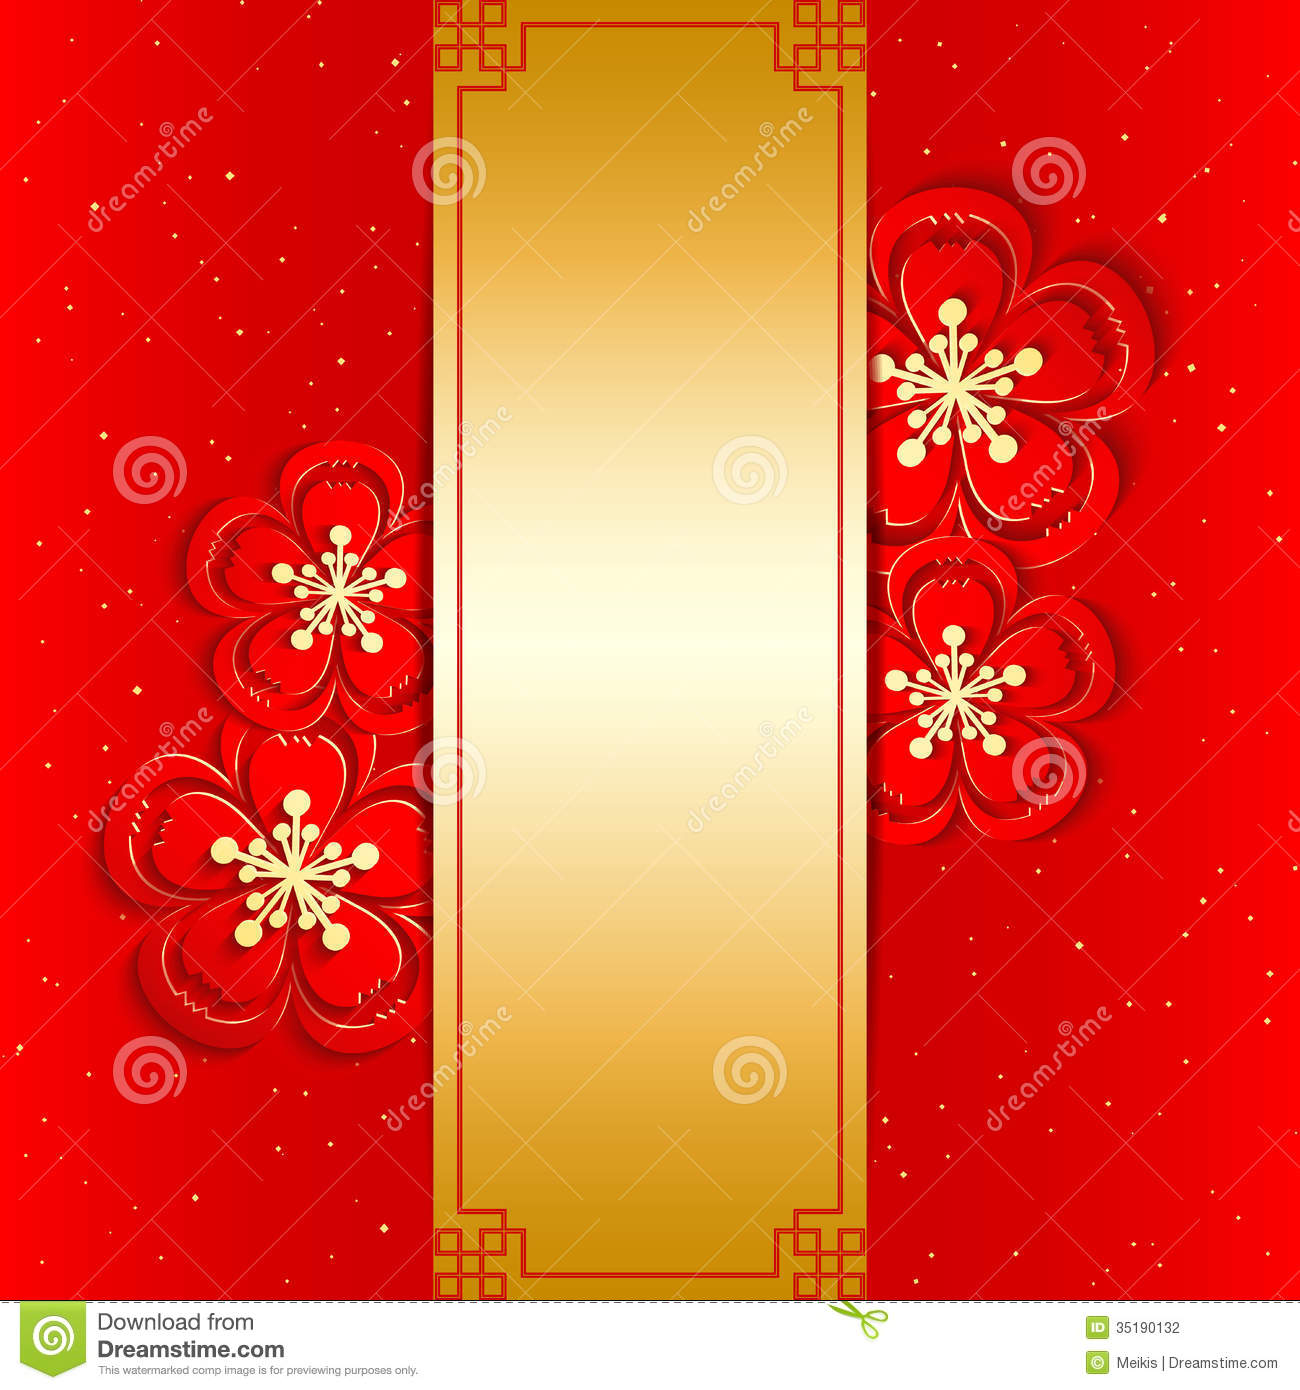 Chinese new year greeting card stock vector illustration of golden chinese new year greeting card m4hsunfo